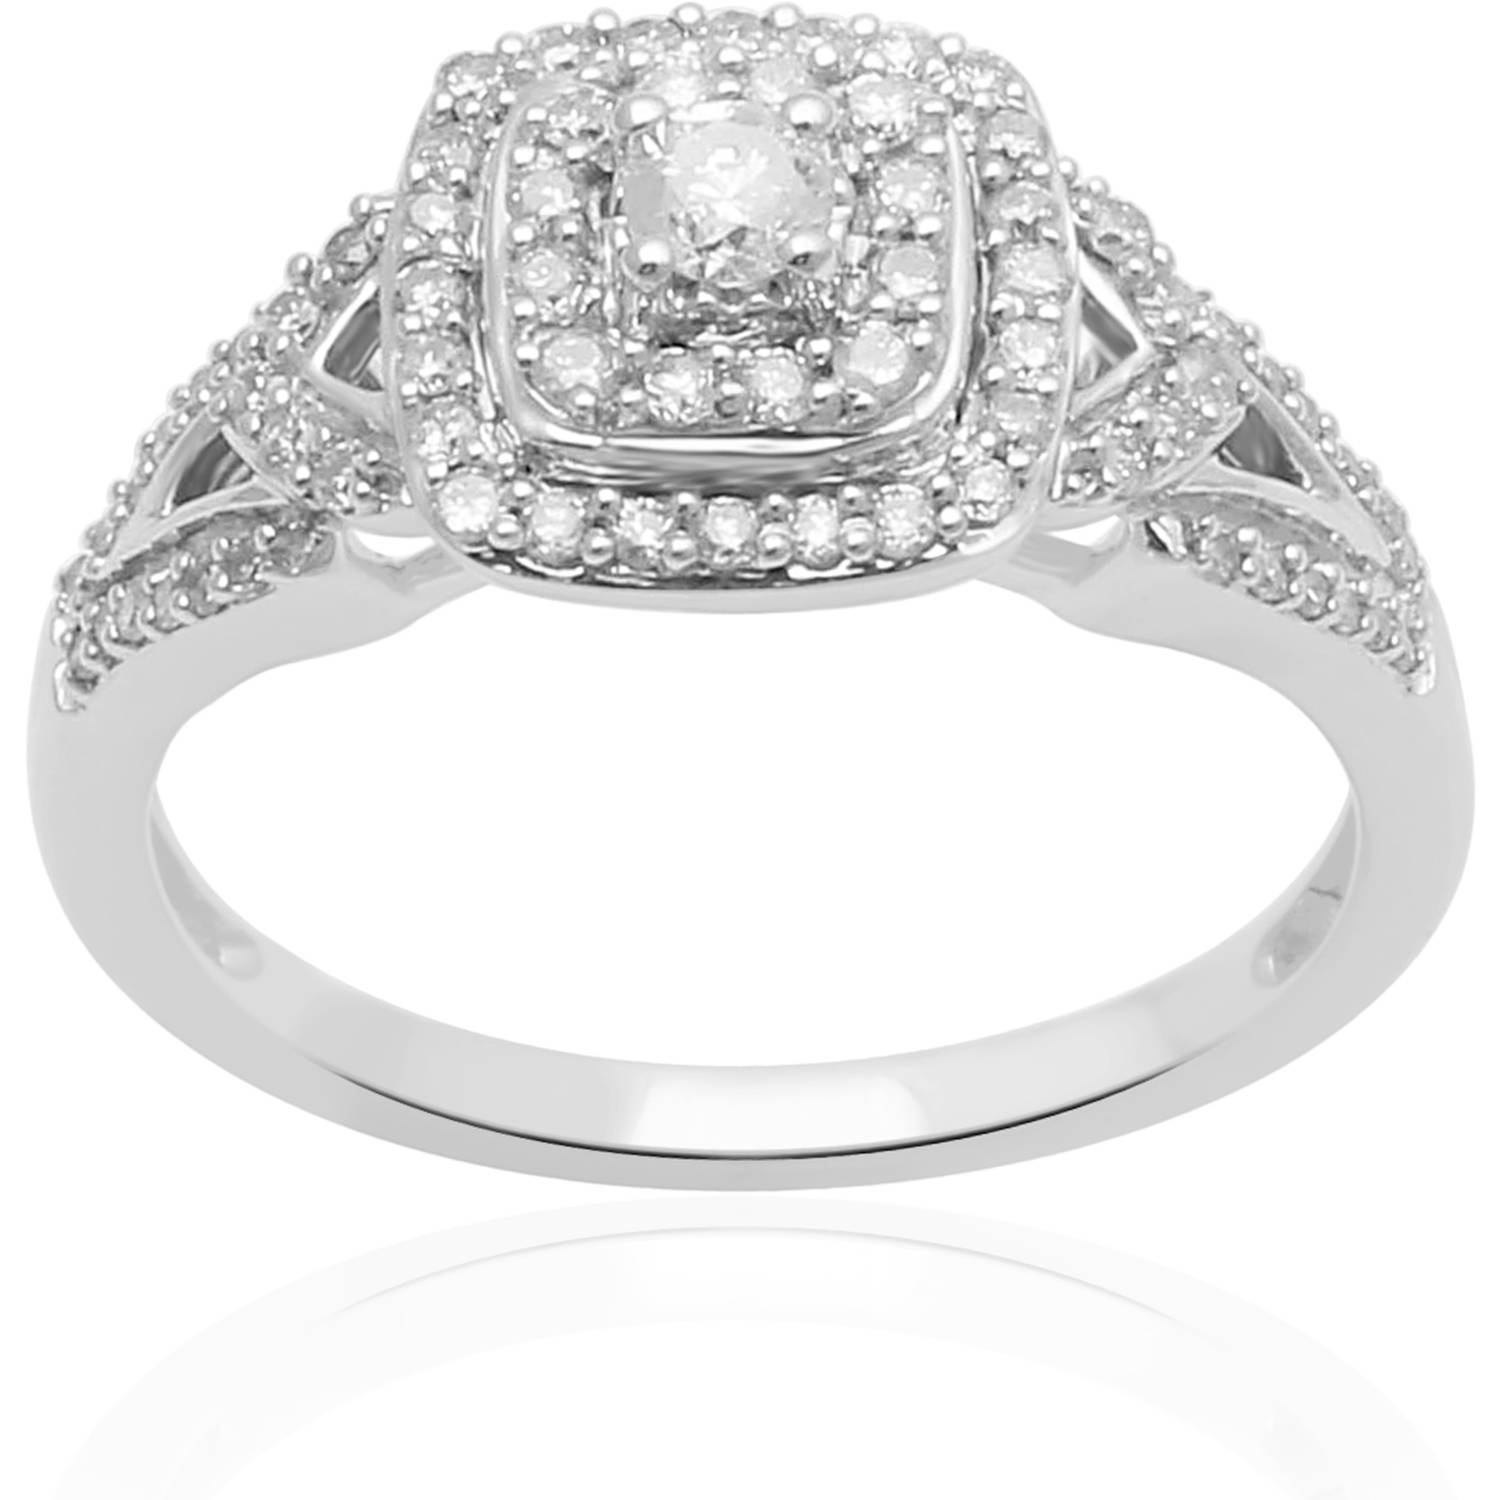 Forever Bride 1/2 Carat T.W. Diamond Sterling Silver Anniversary Ring